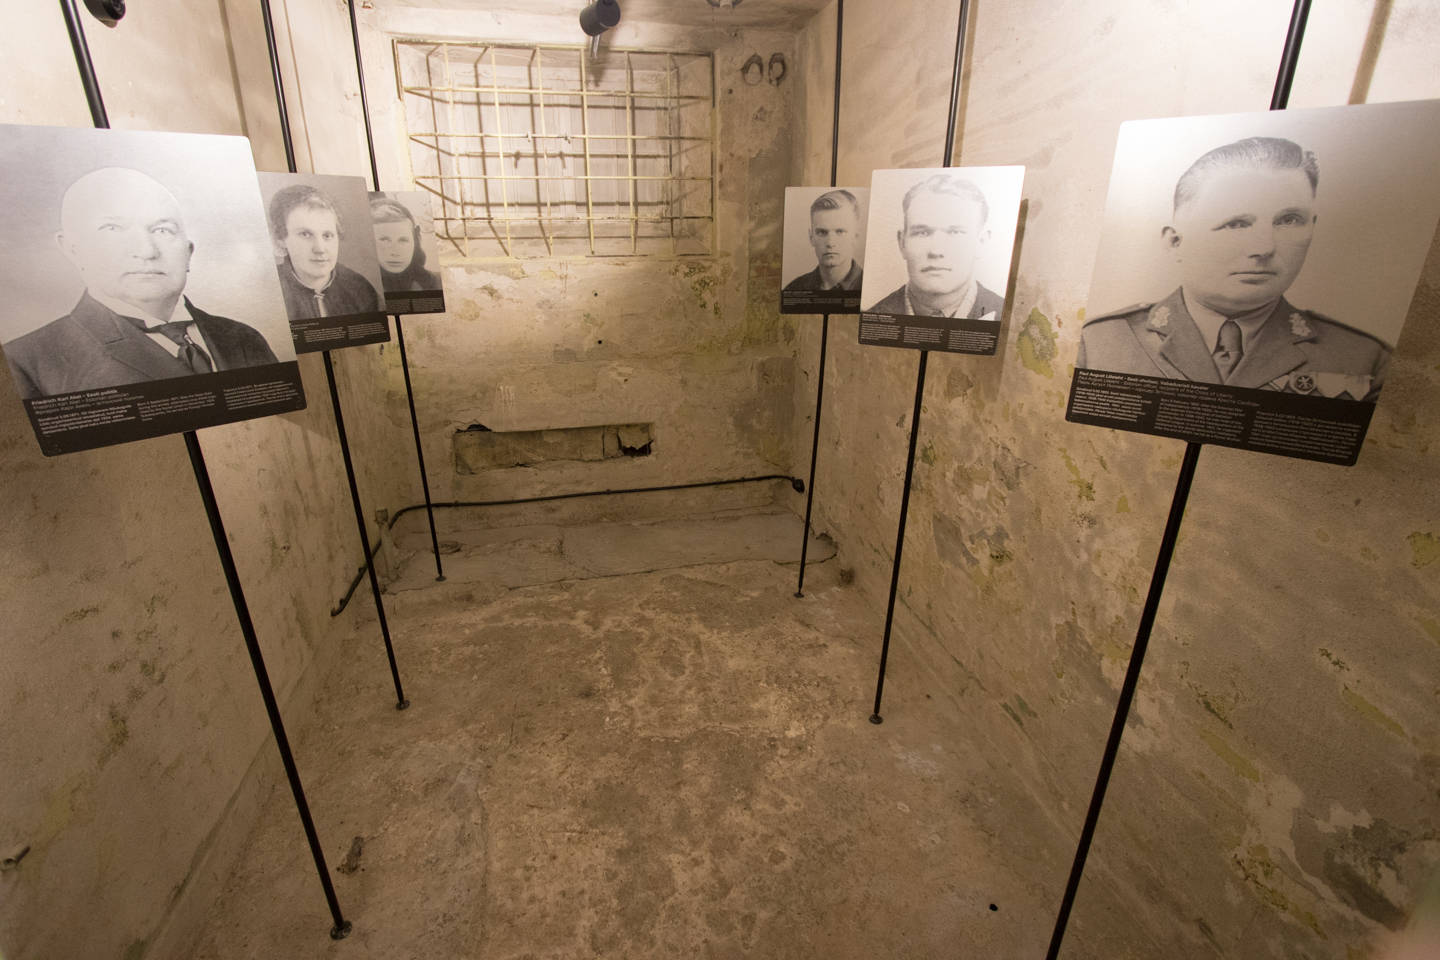 KGB Prison Cells in Tallinn, Estonia